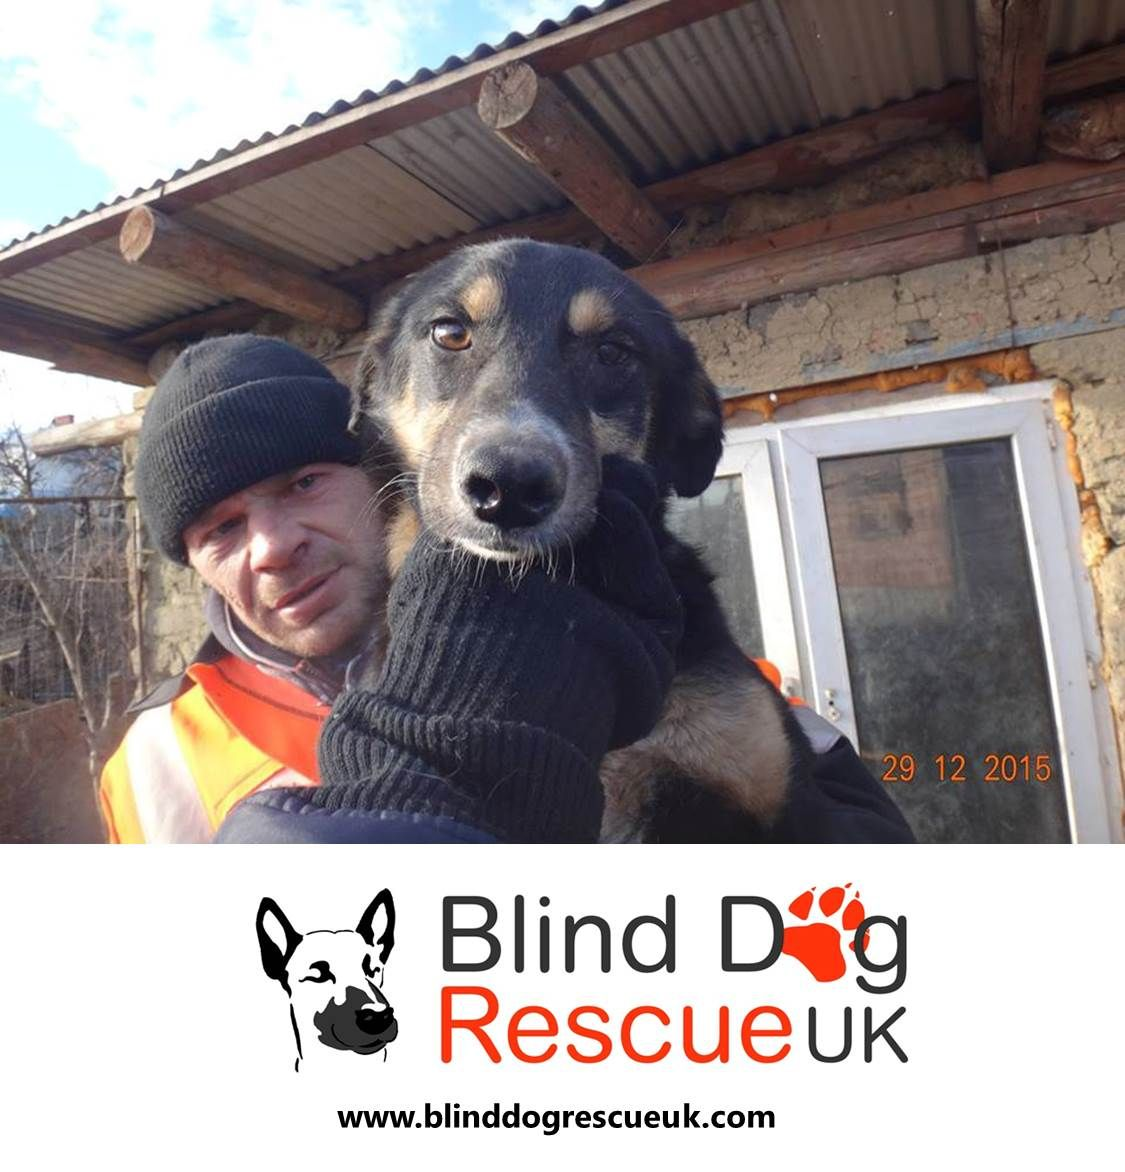 Blink is one of our urgent cases currently in the public